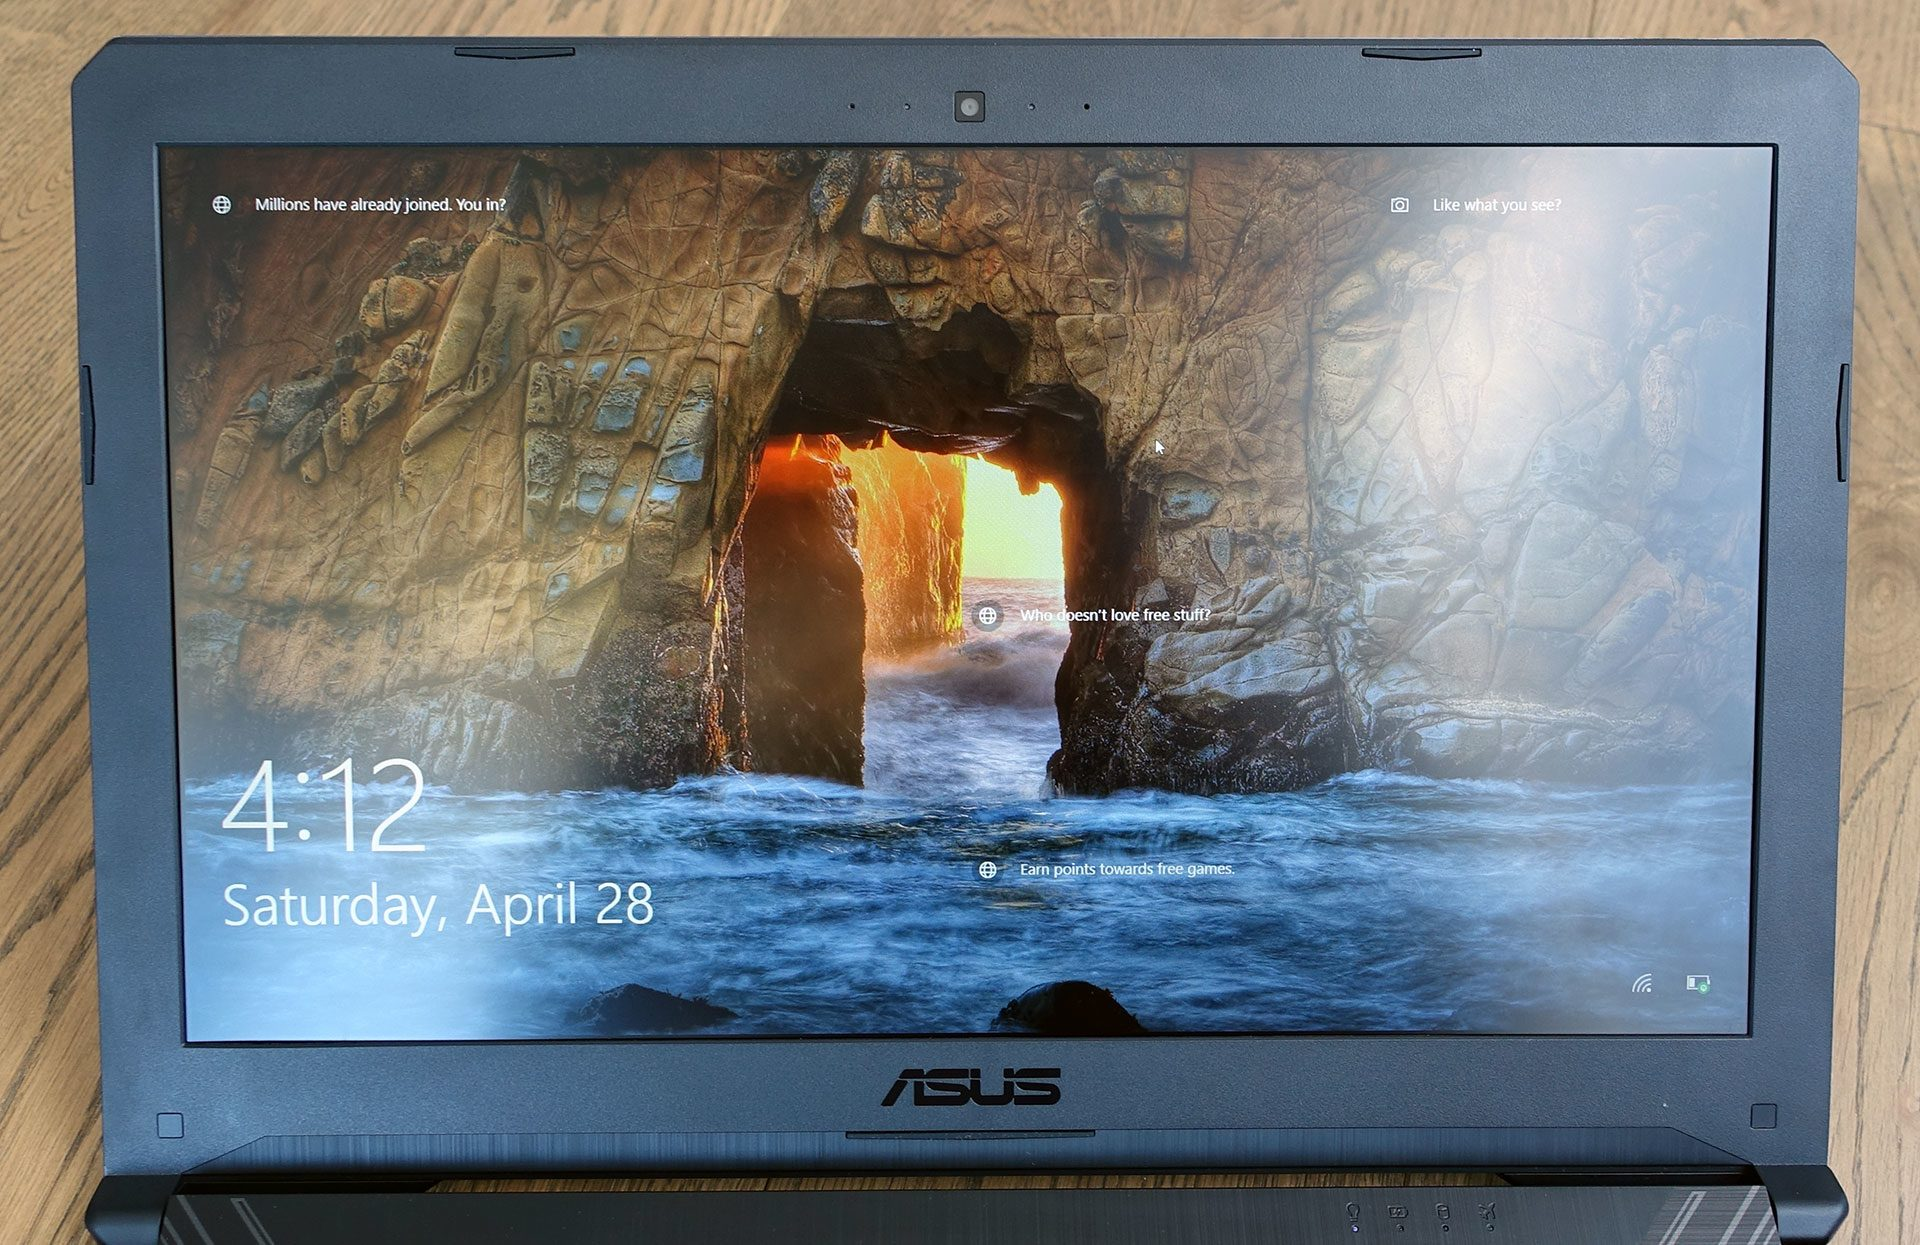 Asus Tuf Fx504 Review Ge I7 8750h Gtx 1050 Ti Science Notebooking Electrical Circuit Boxes And Online Game Love The Panel Is However Very Poorly Calibrated Out Of Box With A Cool White Point Skewed Gamma Gray Levels So You Should Definitely Calibrate It Or